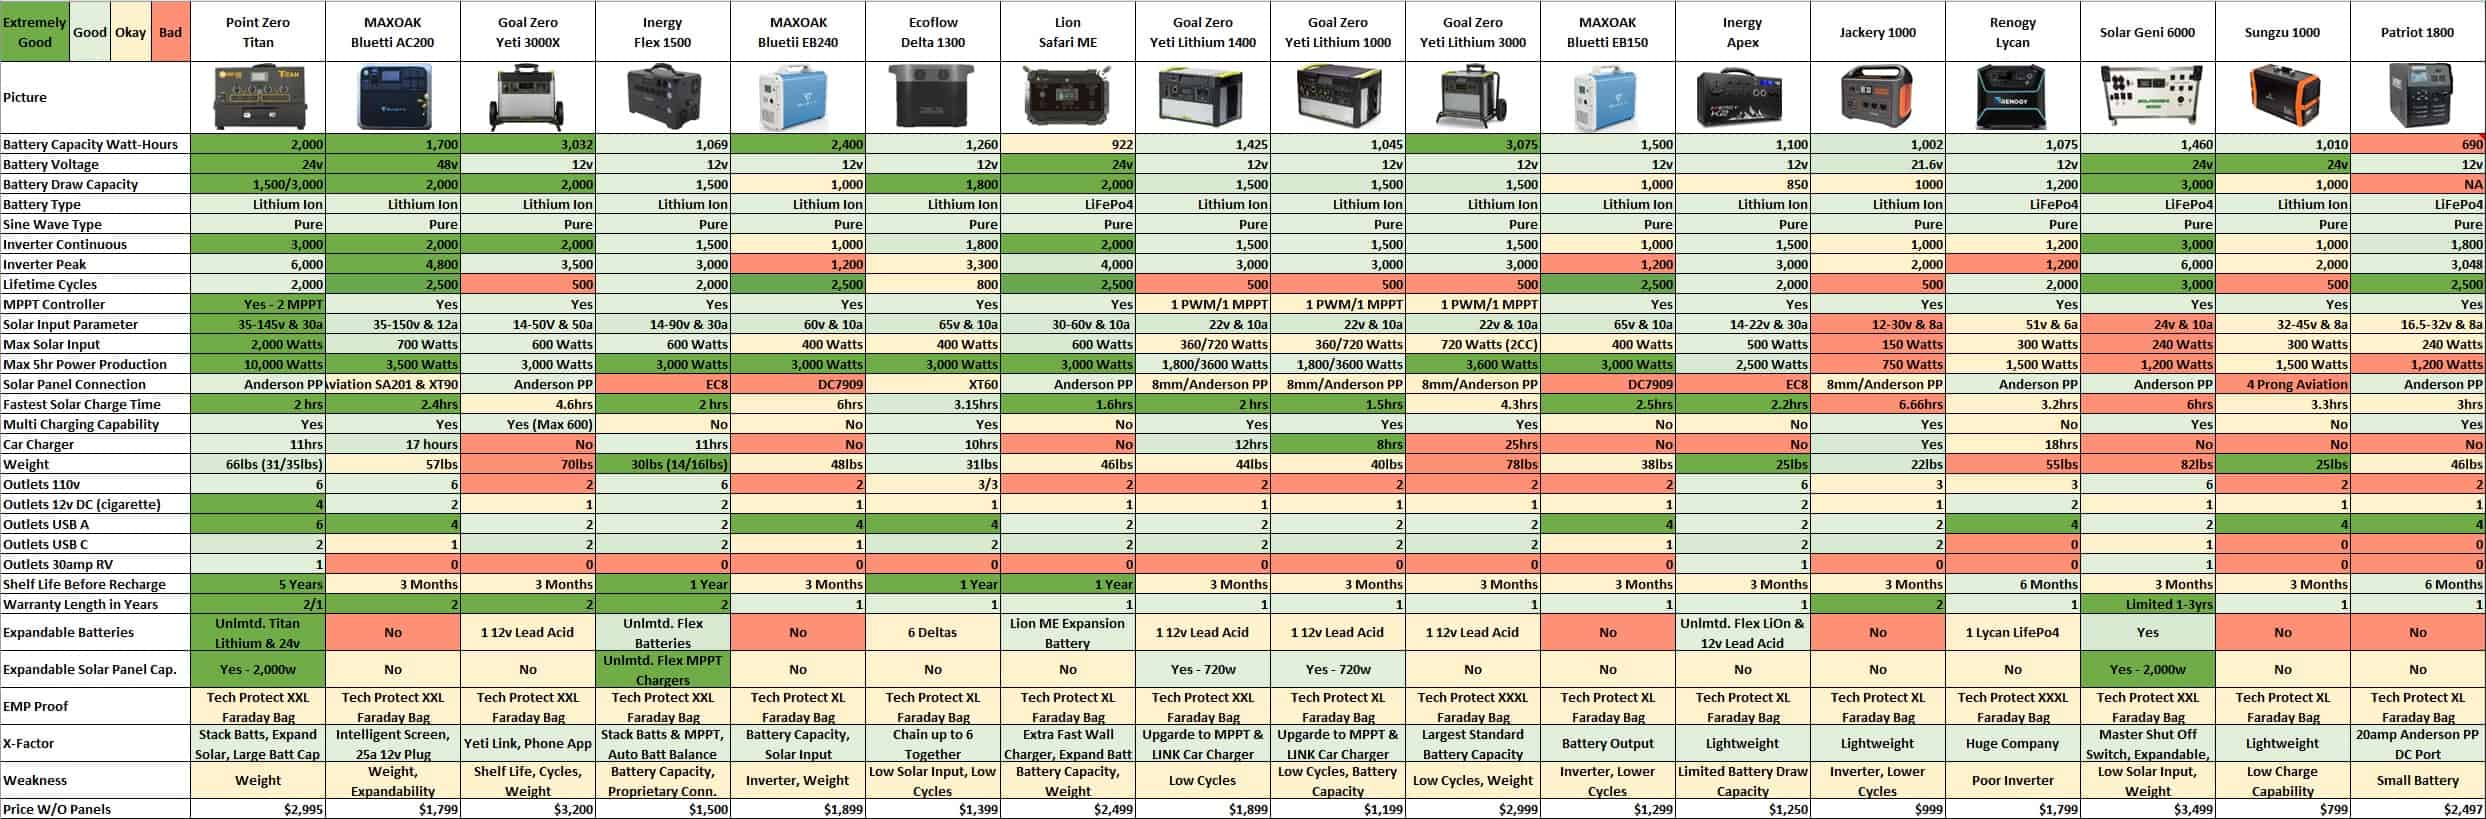 Before You Buy Complete Comparison Of All Solar Generators